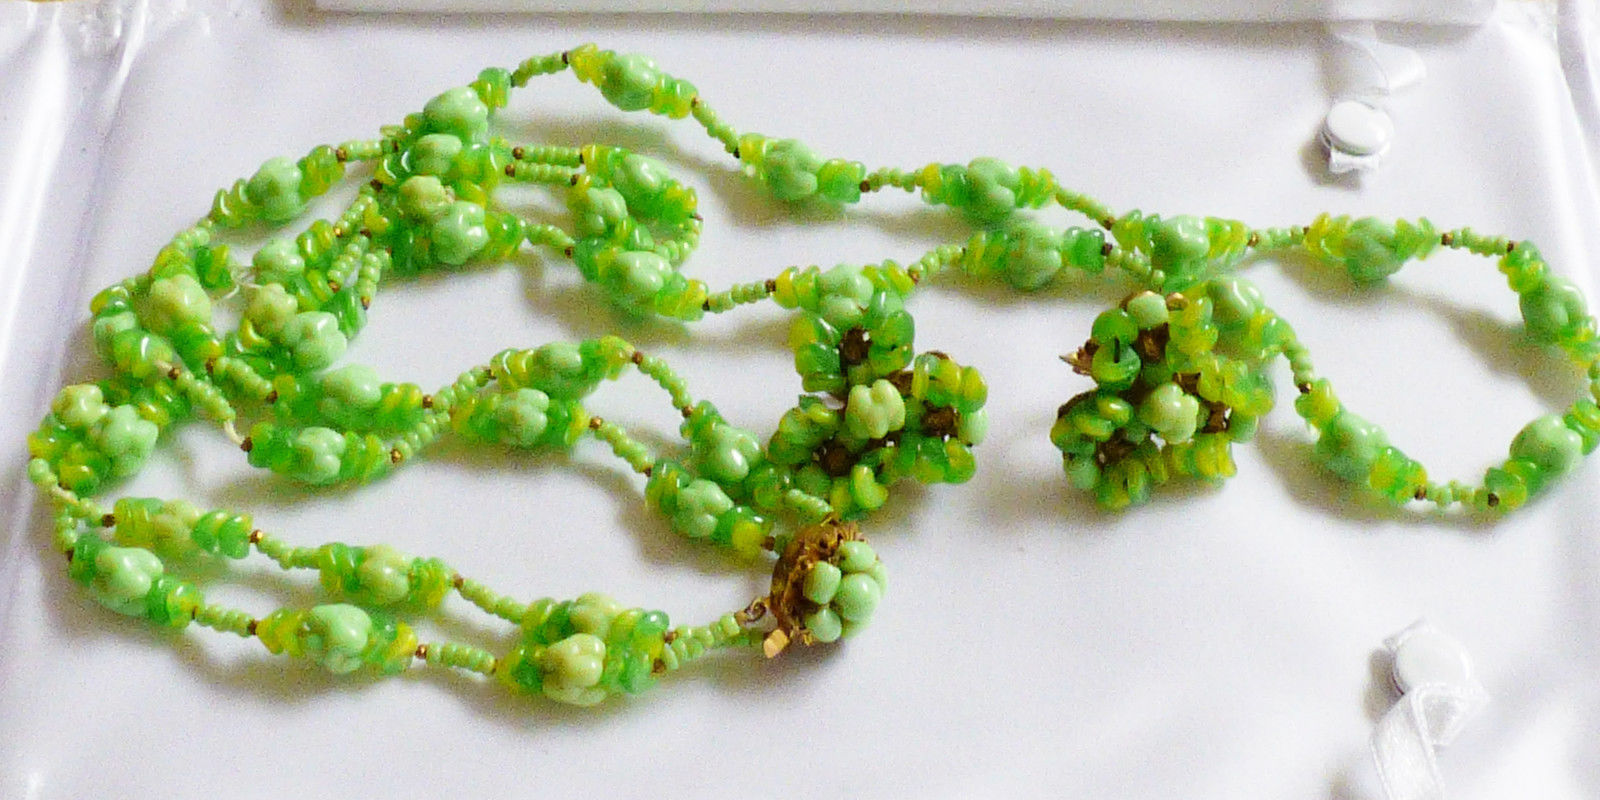 16c2111f32578 VTG Miriam Haskell Green Art Glass Necklace and 50 similar items